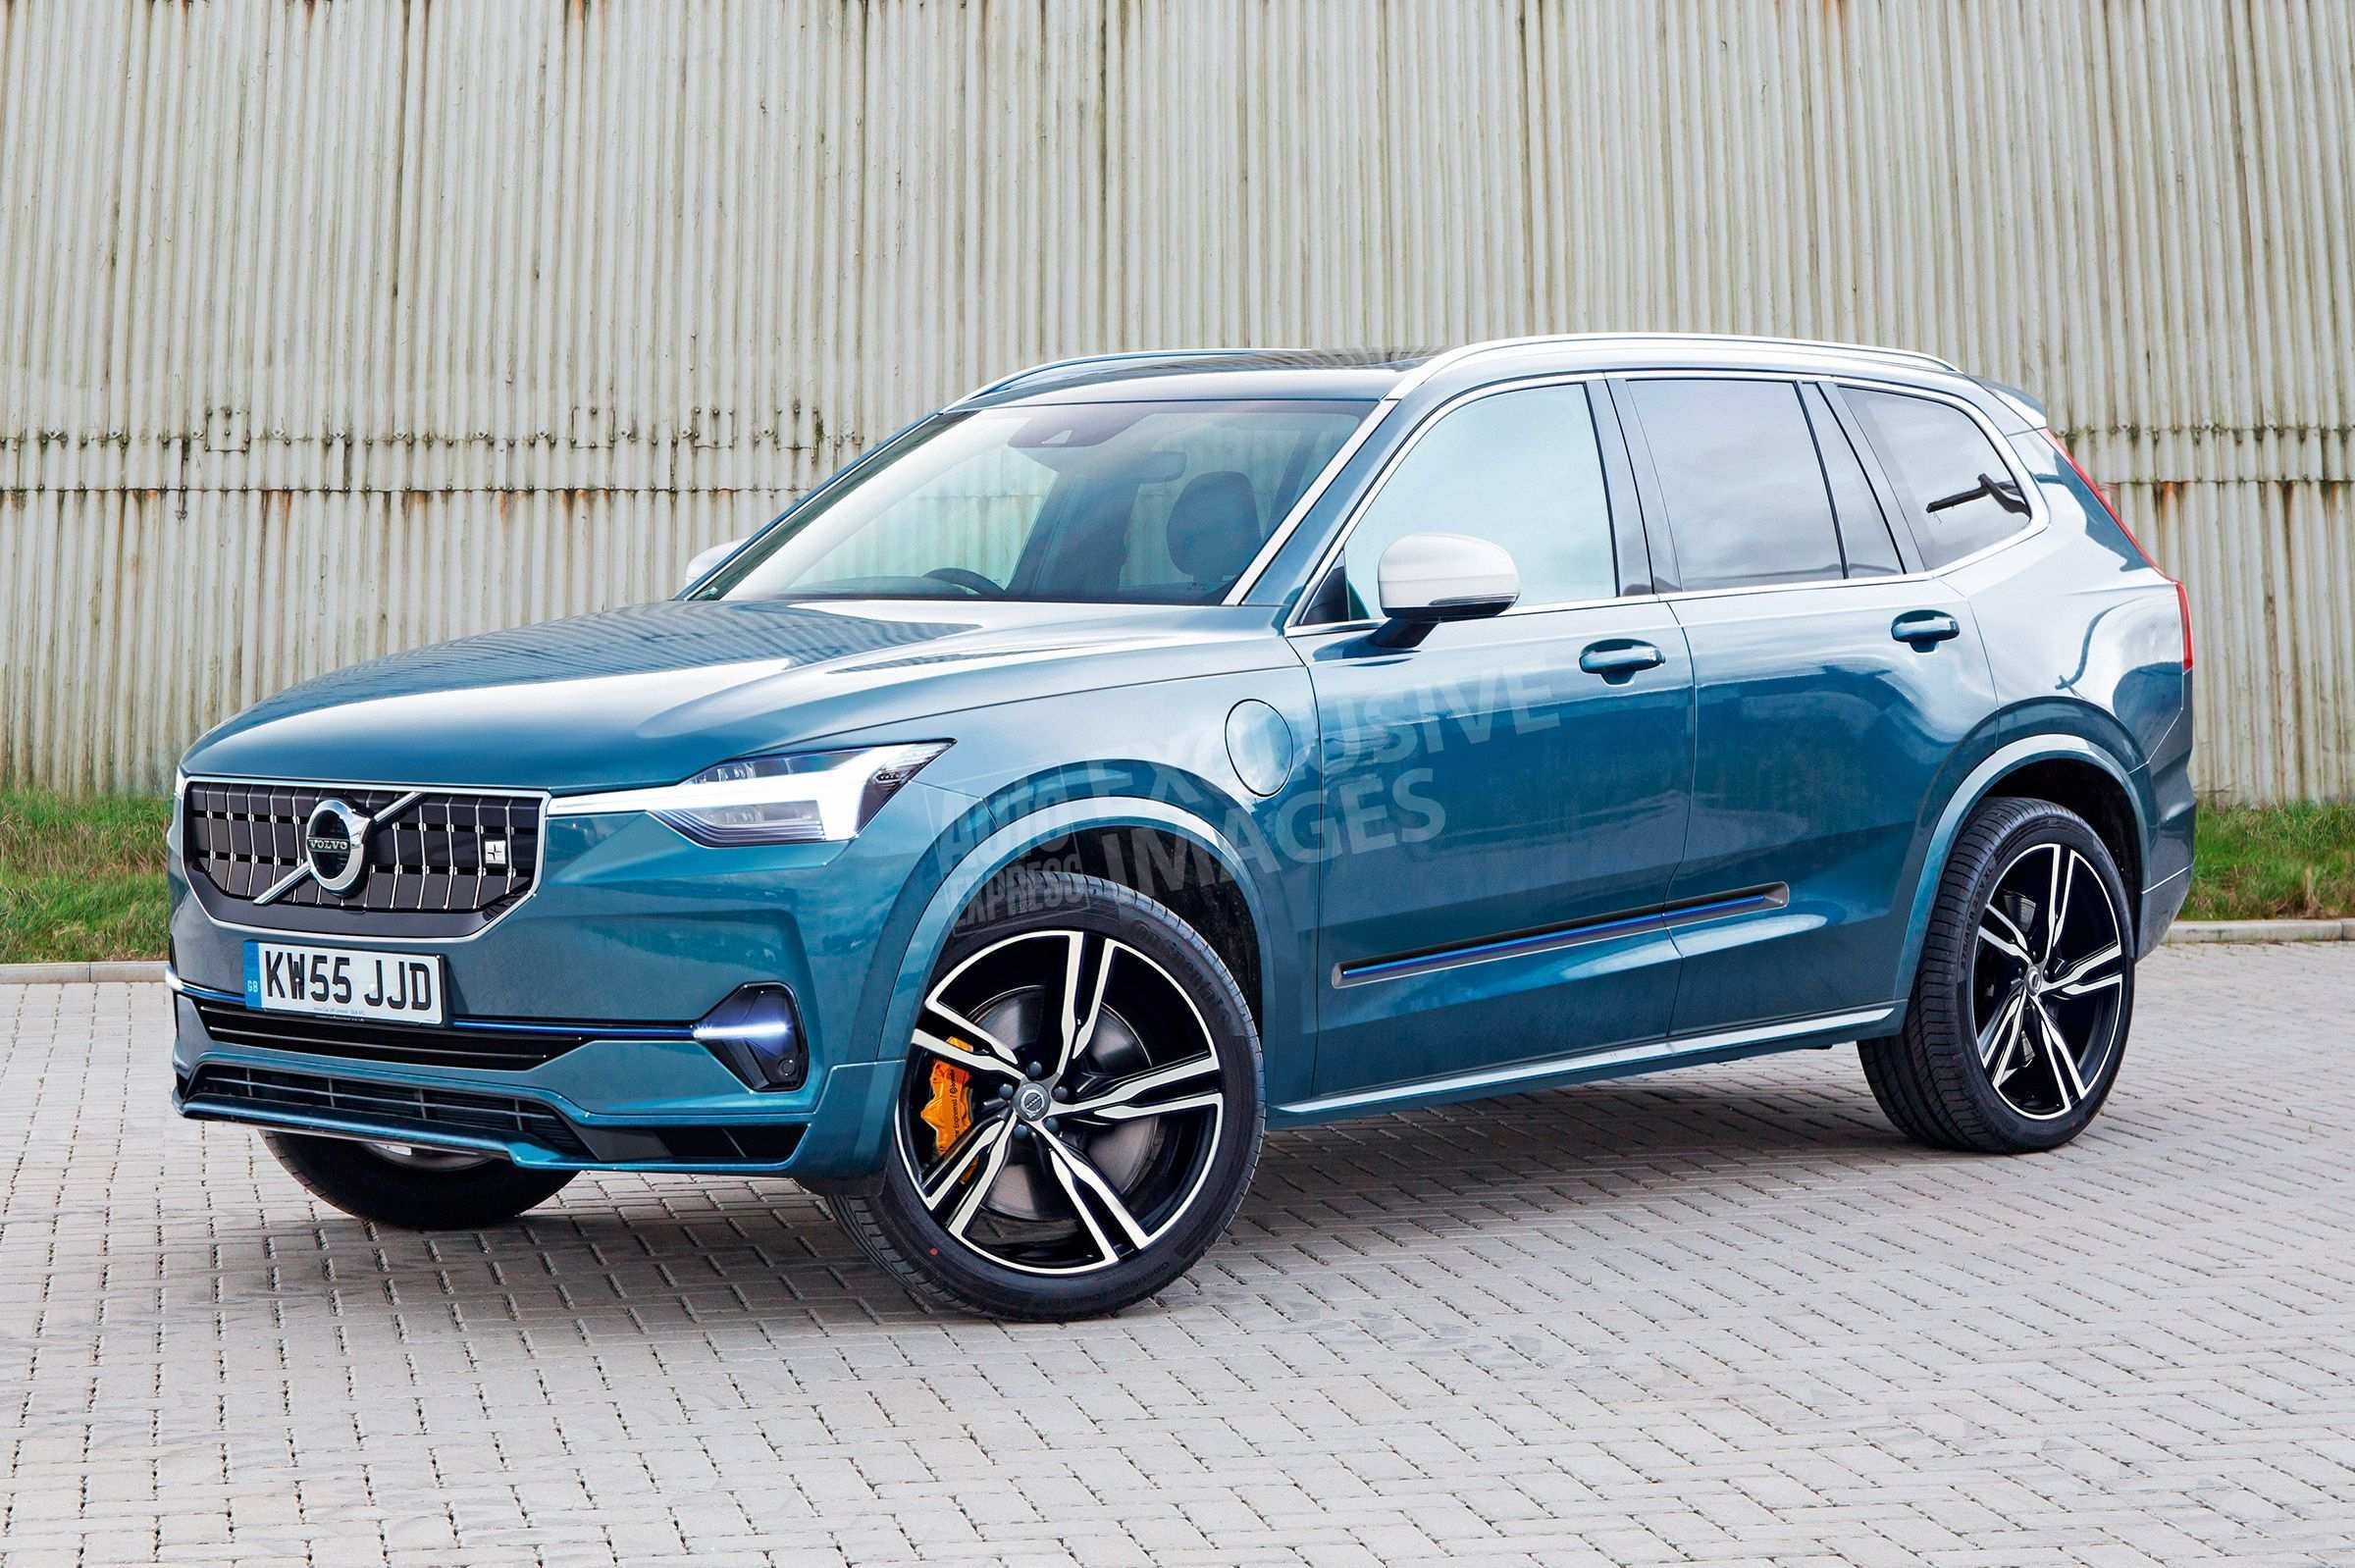 77 Great Volvo Car Open 2020 Price and Review with Volvo Car Open 2020